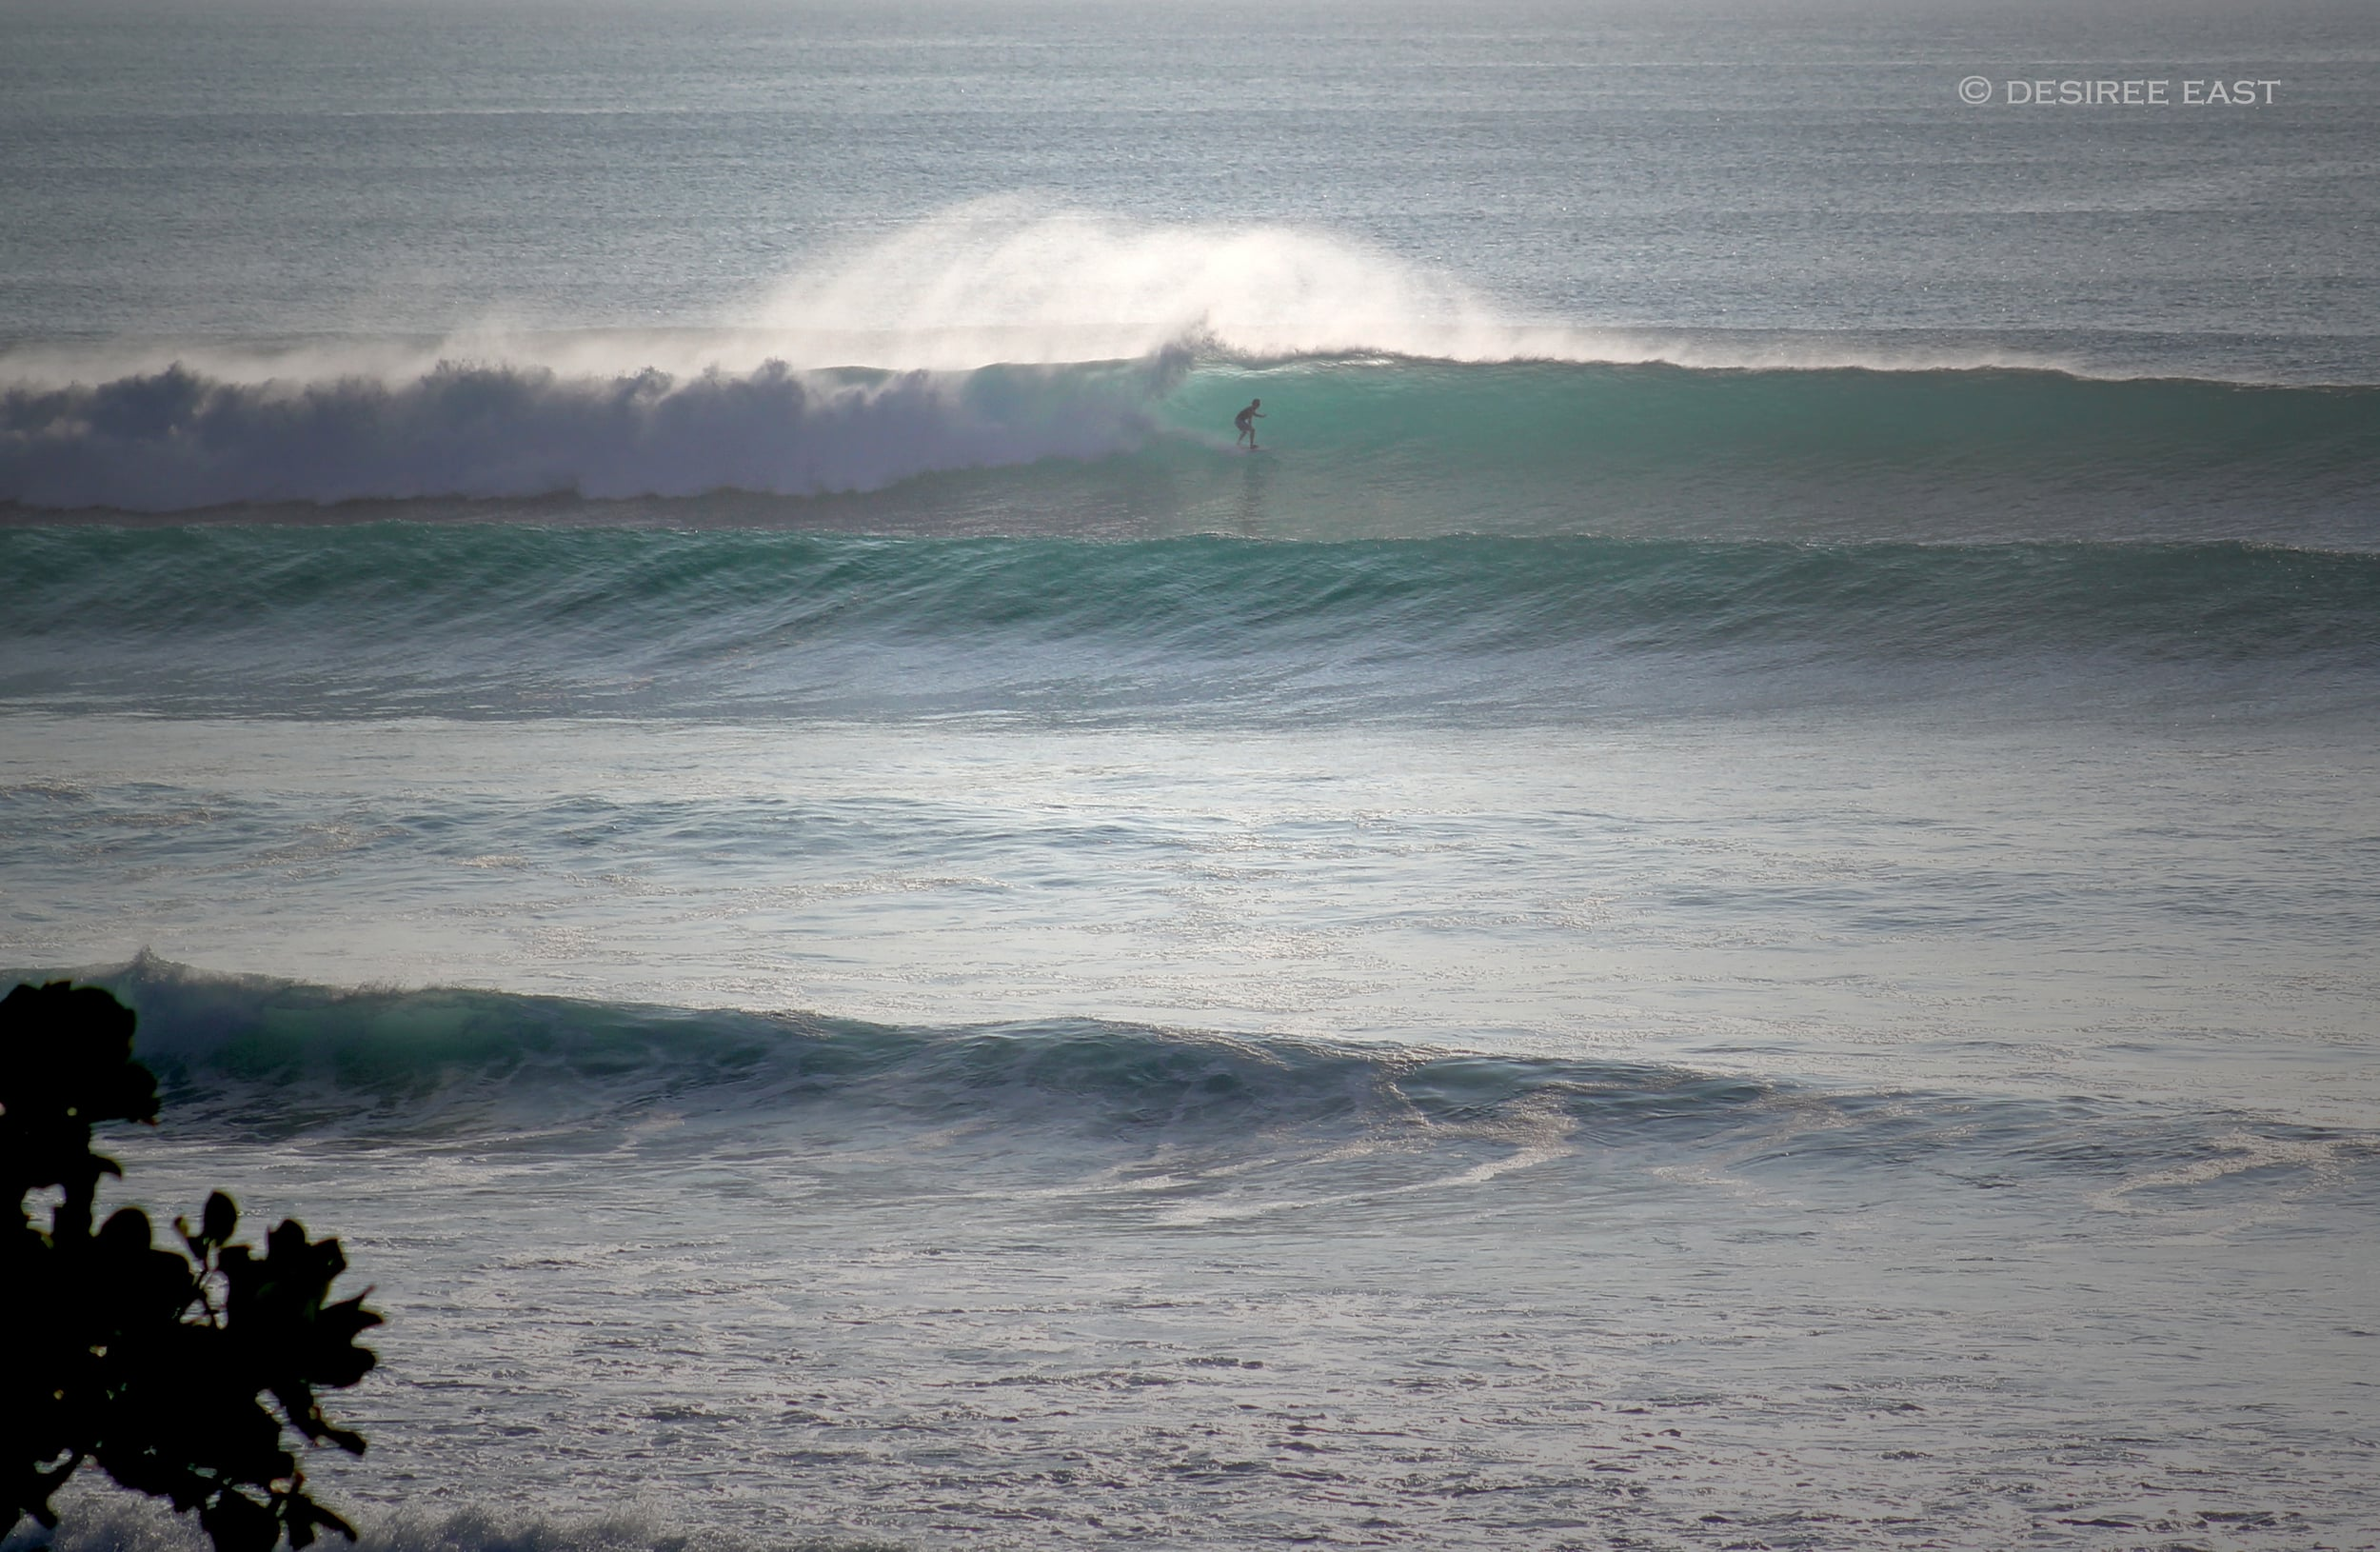 lonely guy getting barrelled. bali, indonesia. photo by desiree east